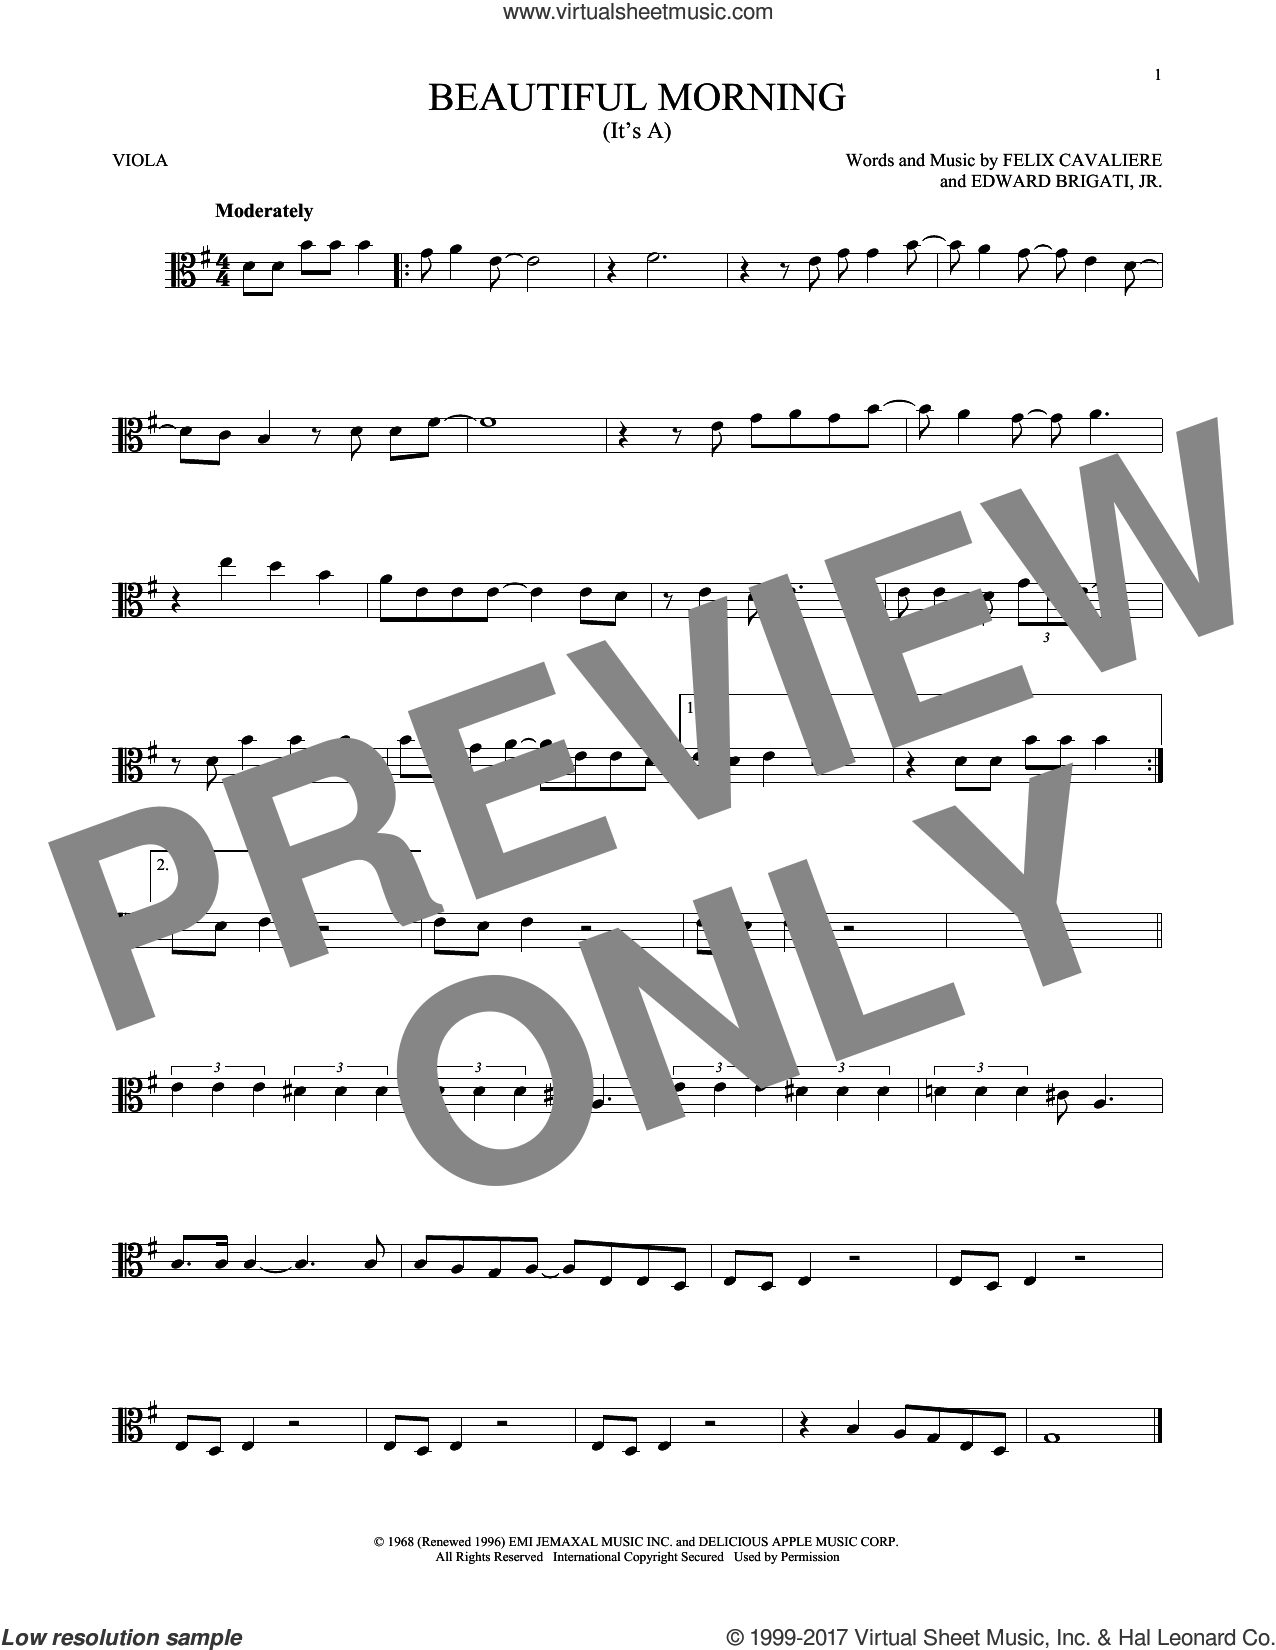 (It's A) Beautiful Morning sheet music for viola solo by The Rascals, Edward Brigati, Jr. and Felix Cavaliere, intermediate skill level